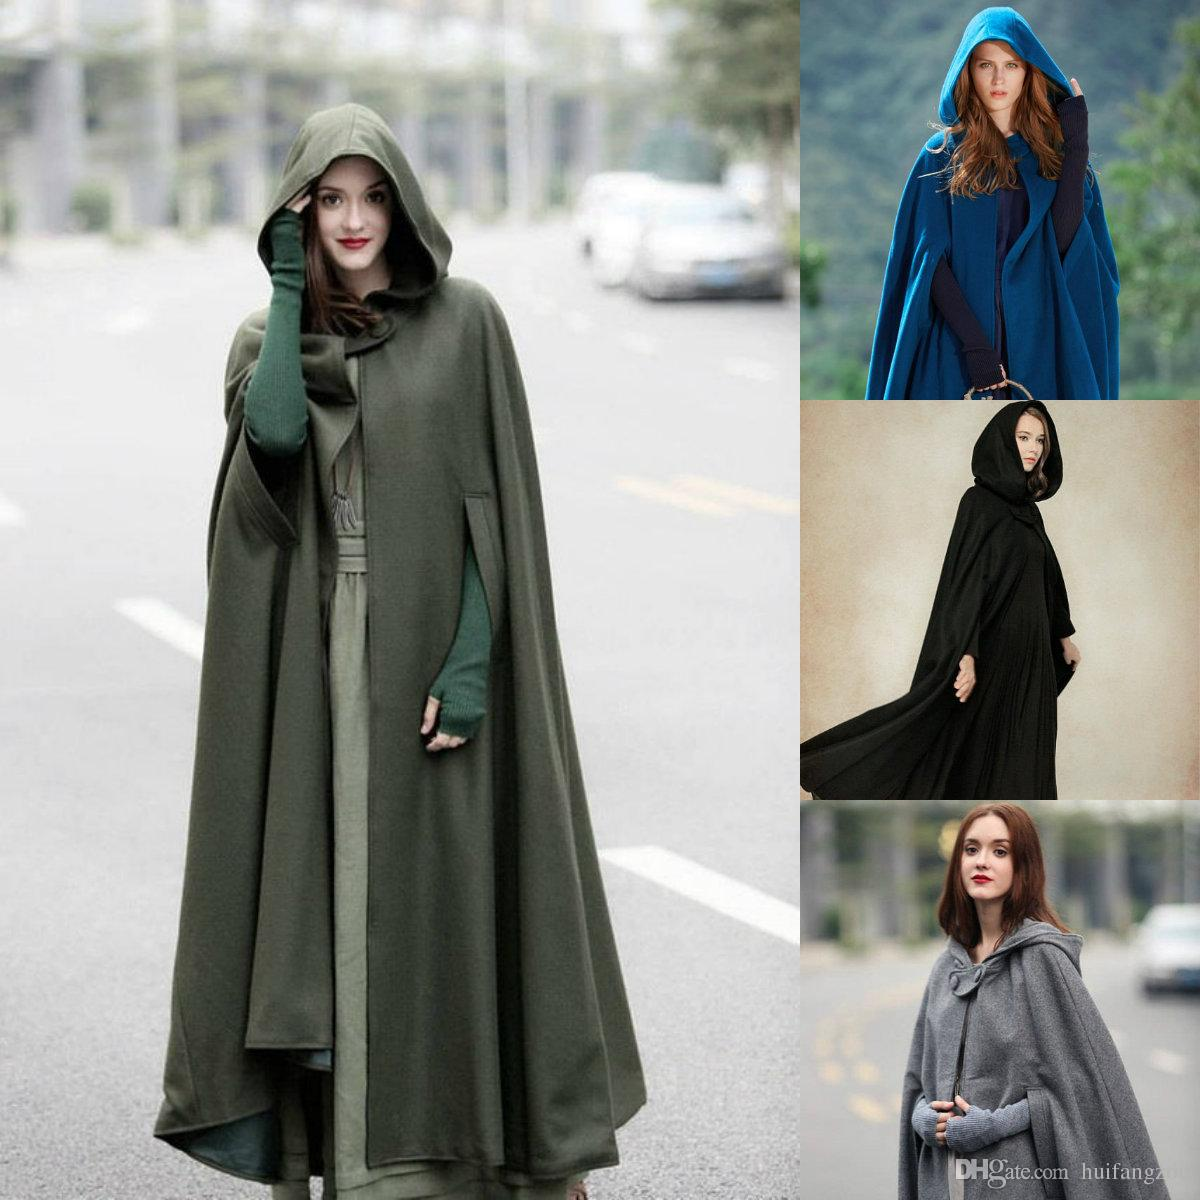 Hooded Cape Clothes Design Fashion: 2019 Fashion Hooded Cloak Cape Women High Quality Long